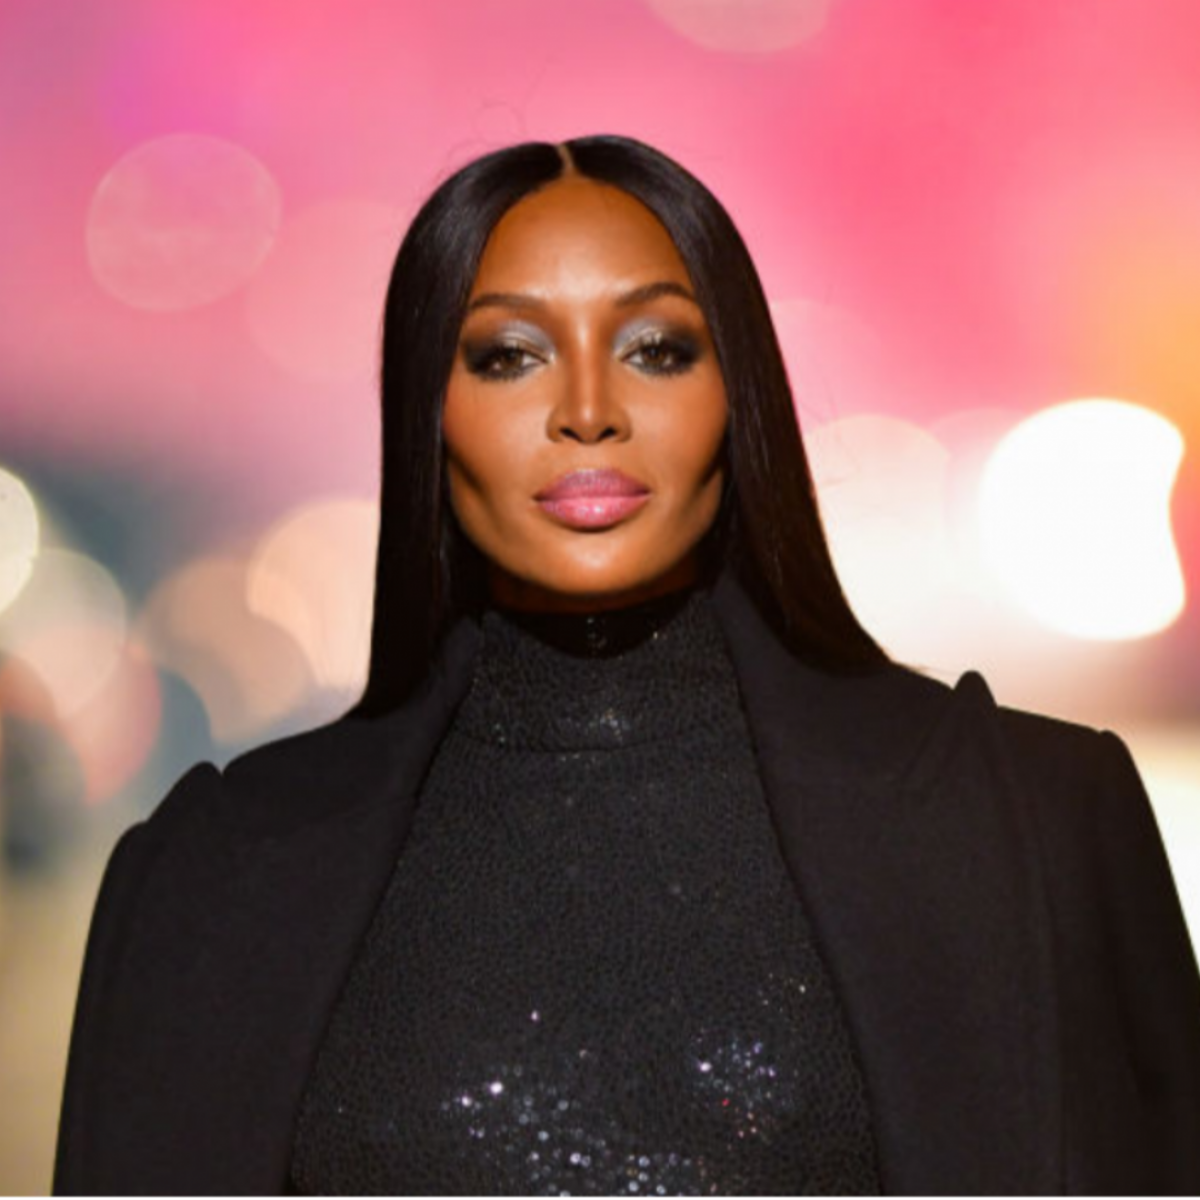 Naomi Campbell Gave A Tour Of Her Kenyan Estate And You Have To See It To Believe It